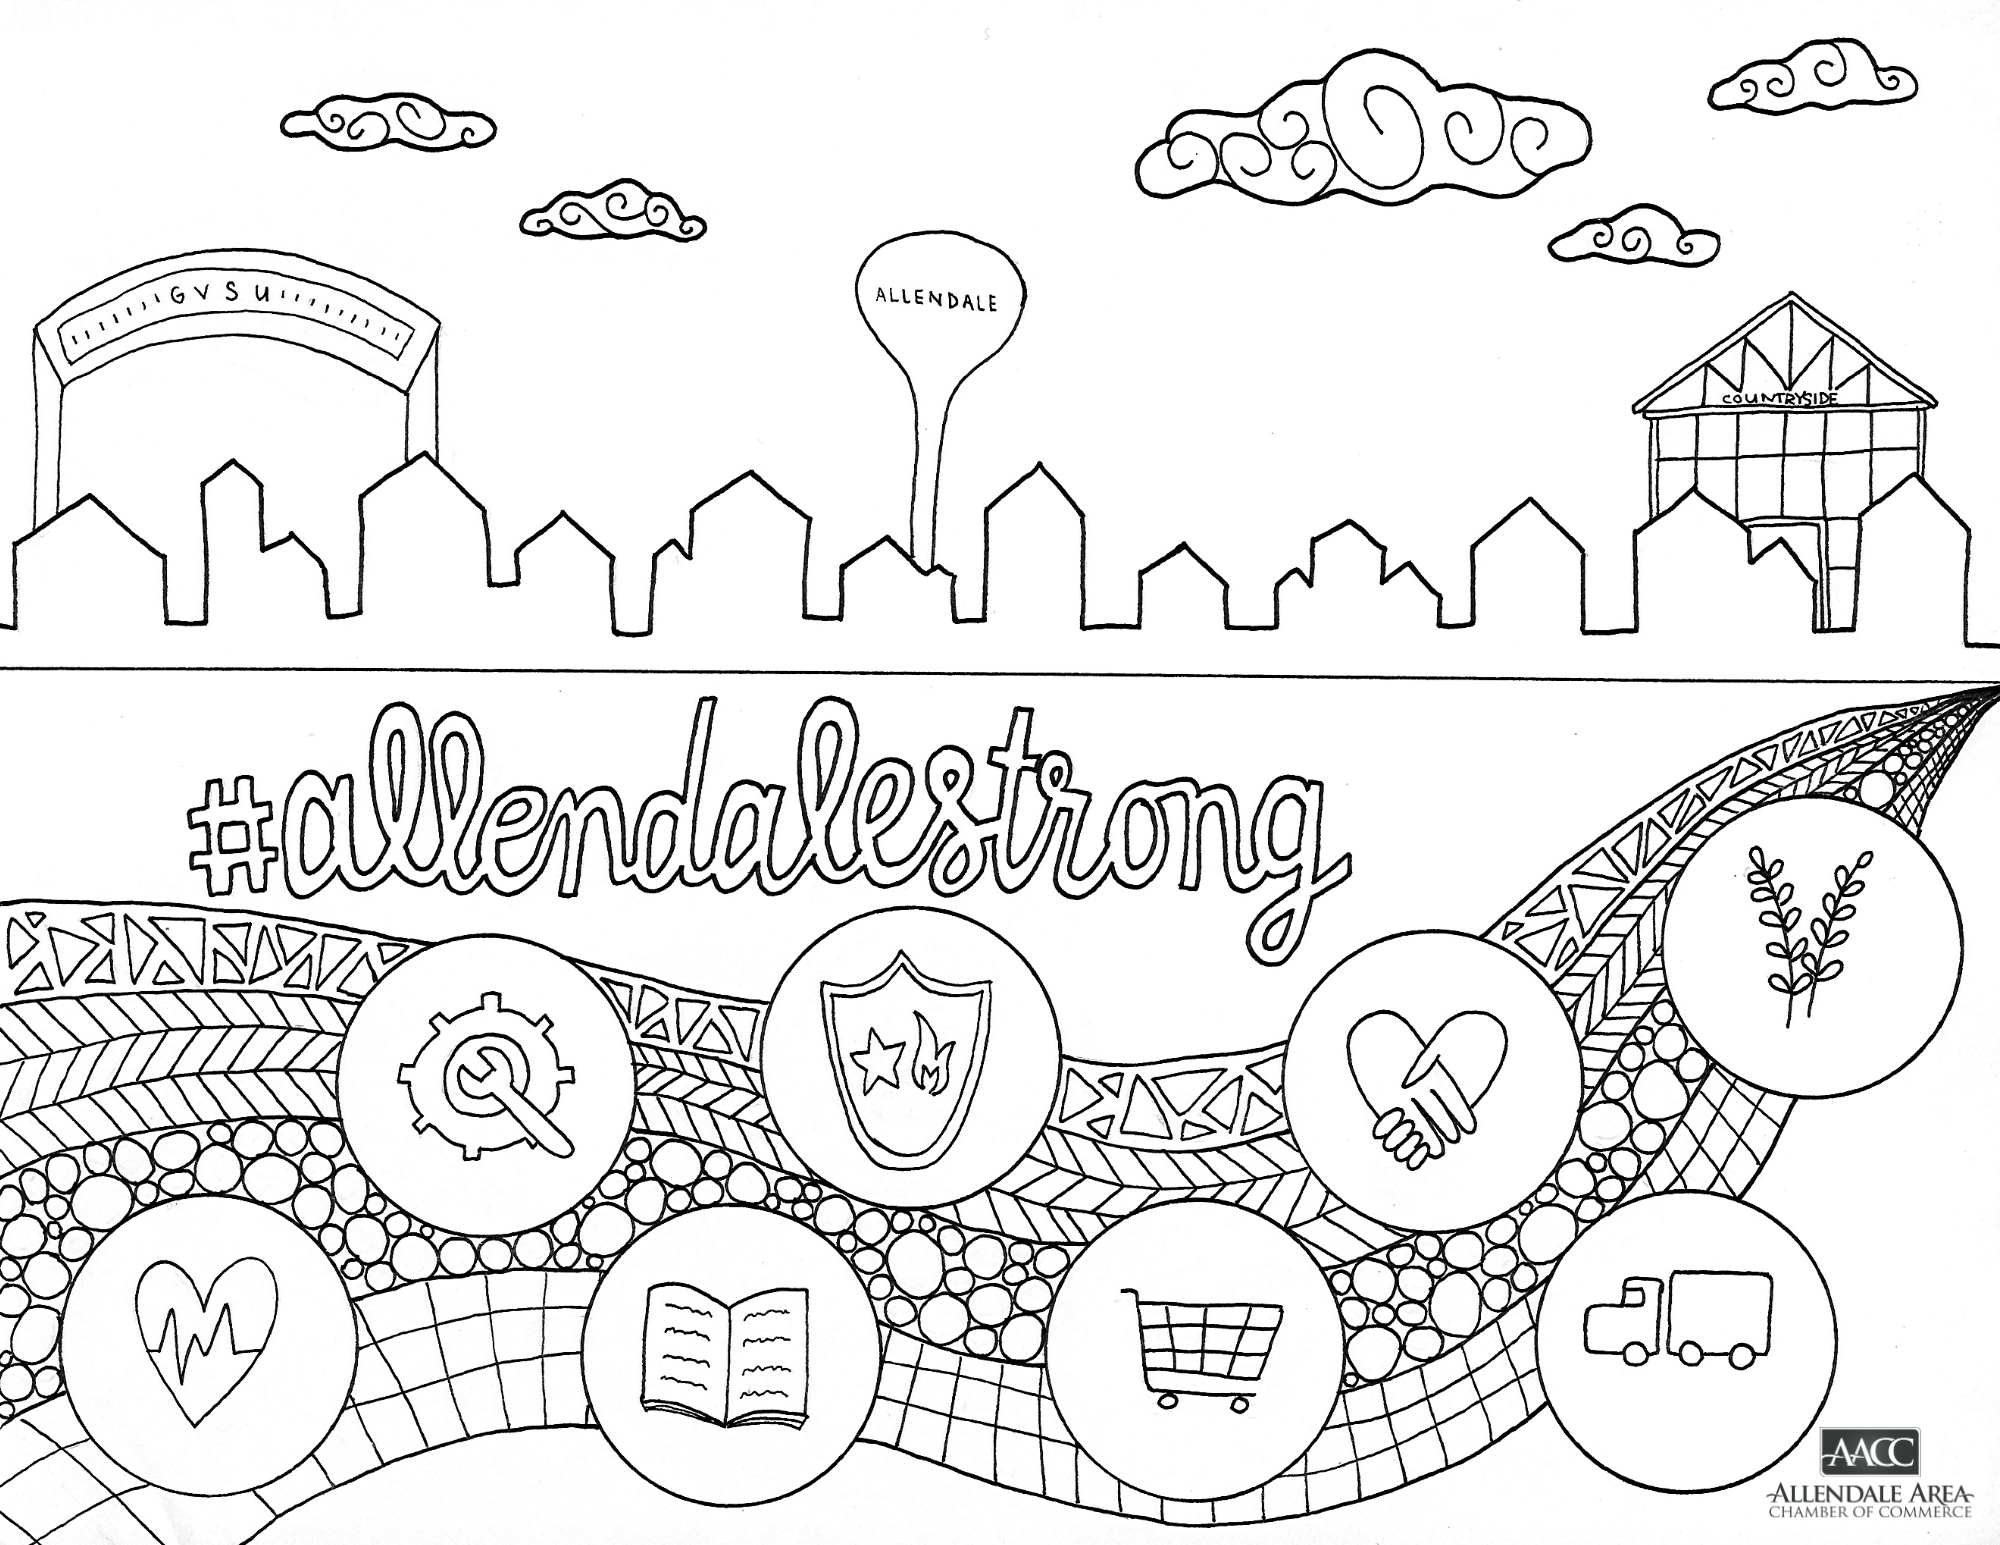 #AllendaleStrong Coloring Page